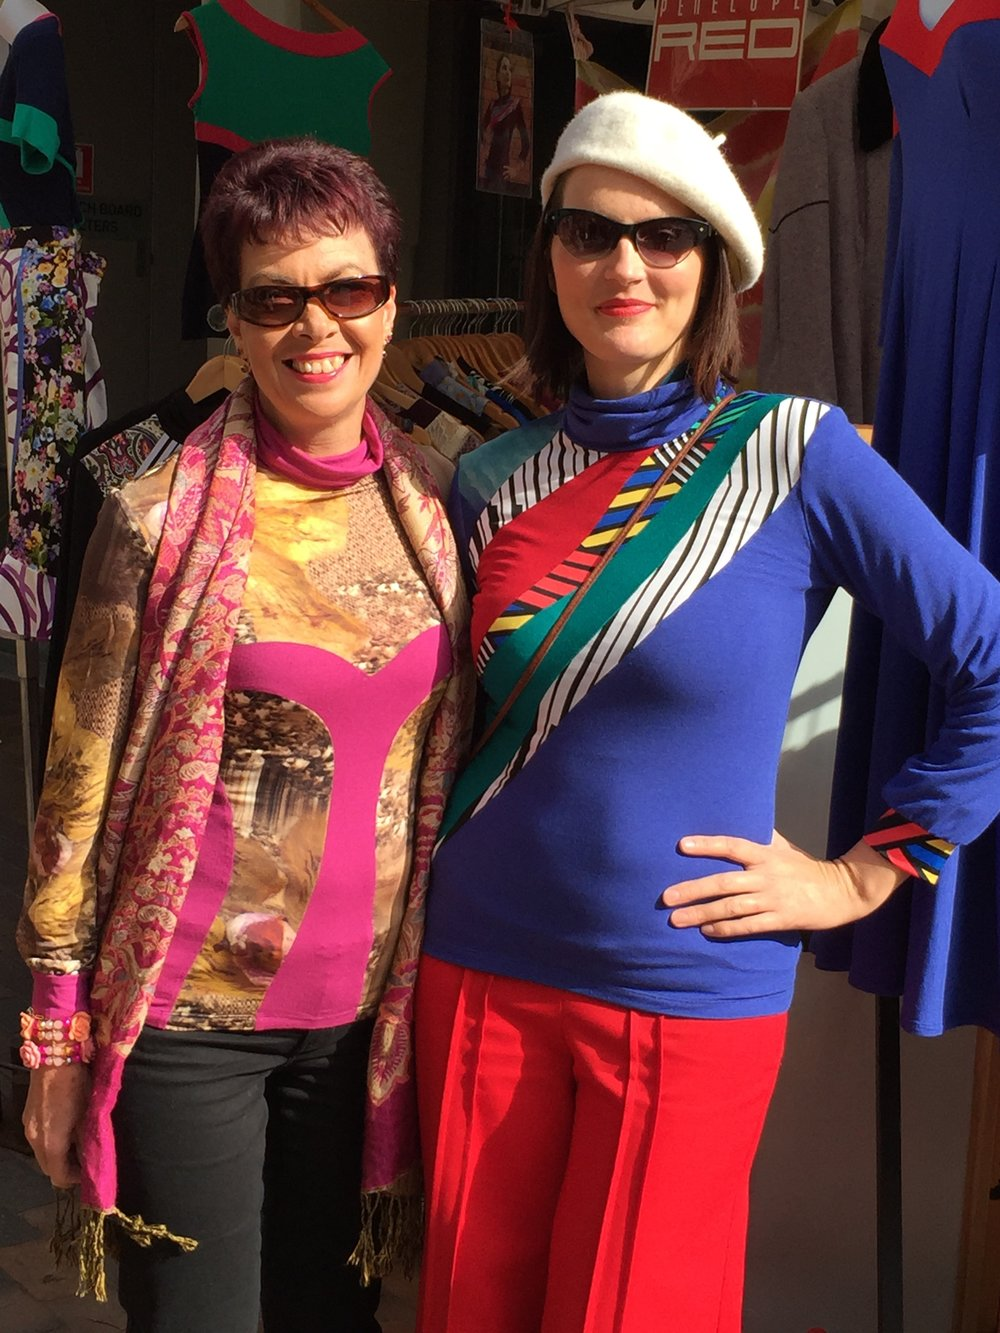 Leanne wears a one of a kind Pink and printed Skivvy that I designed especially for her. I am thinking I might have to make something similar like this next winter! I am wearing a bright blue and pop art inspired version of the Jigsaw Skivvy. One more copy of this version is available.